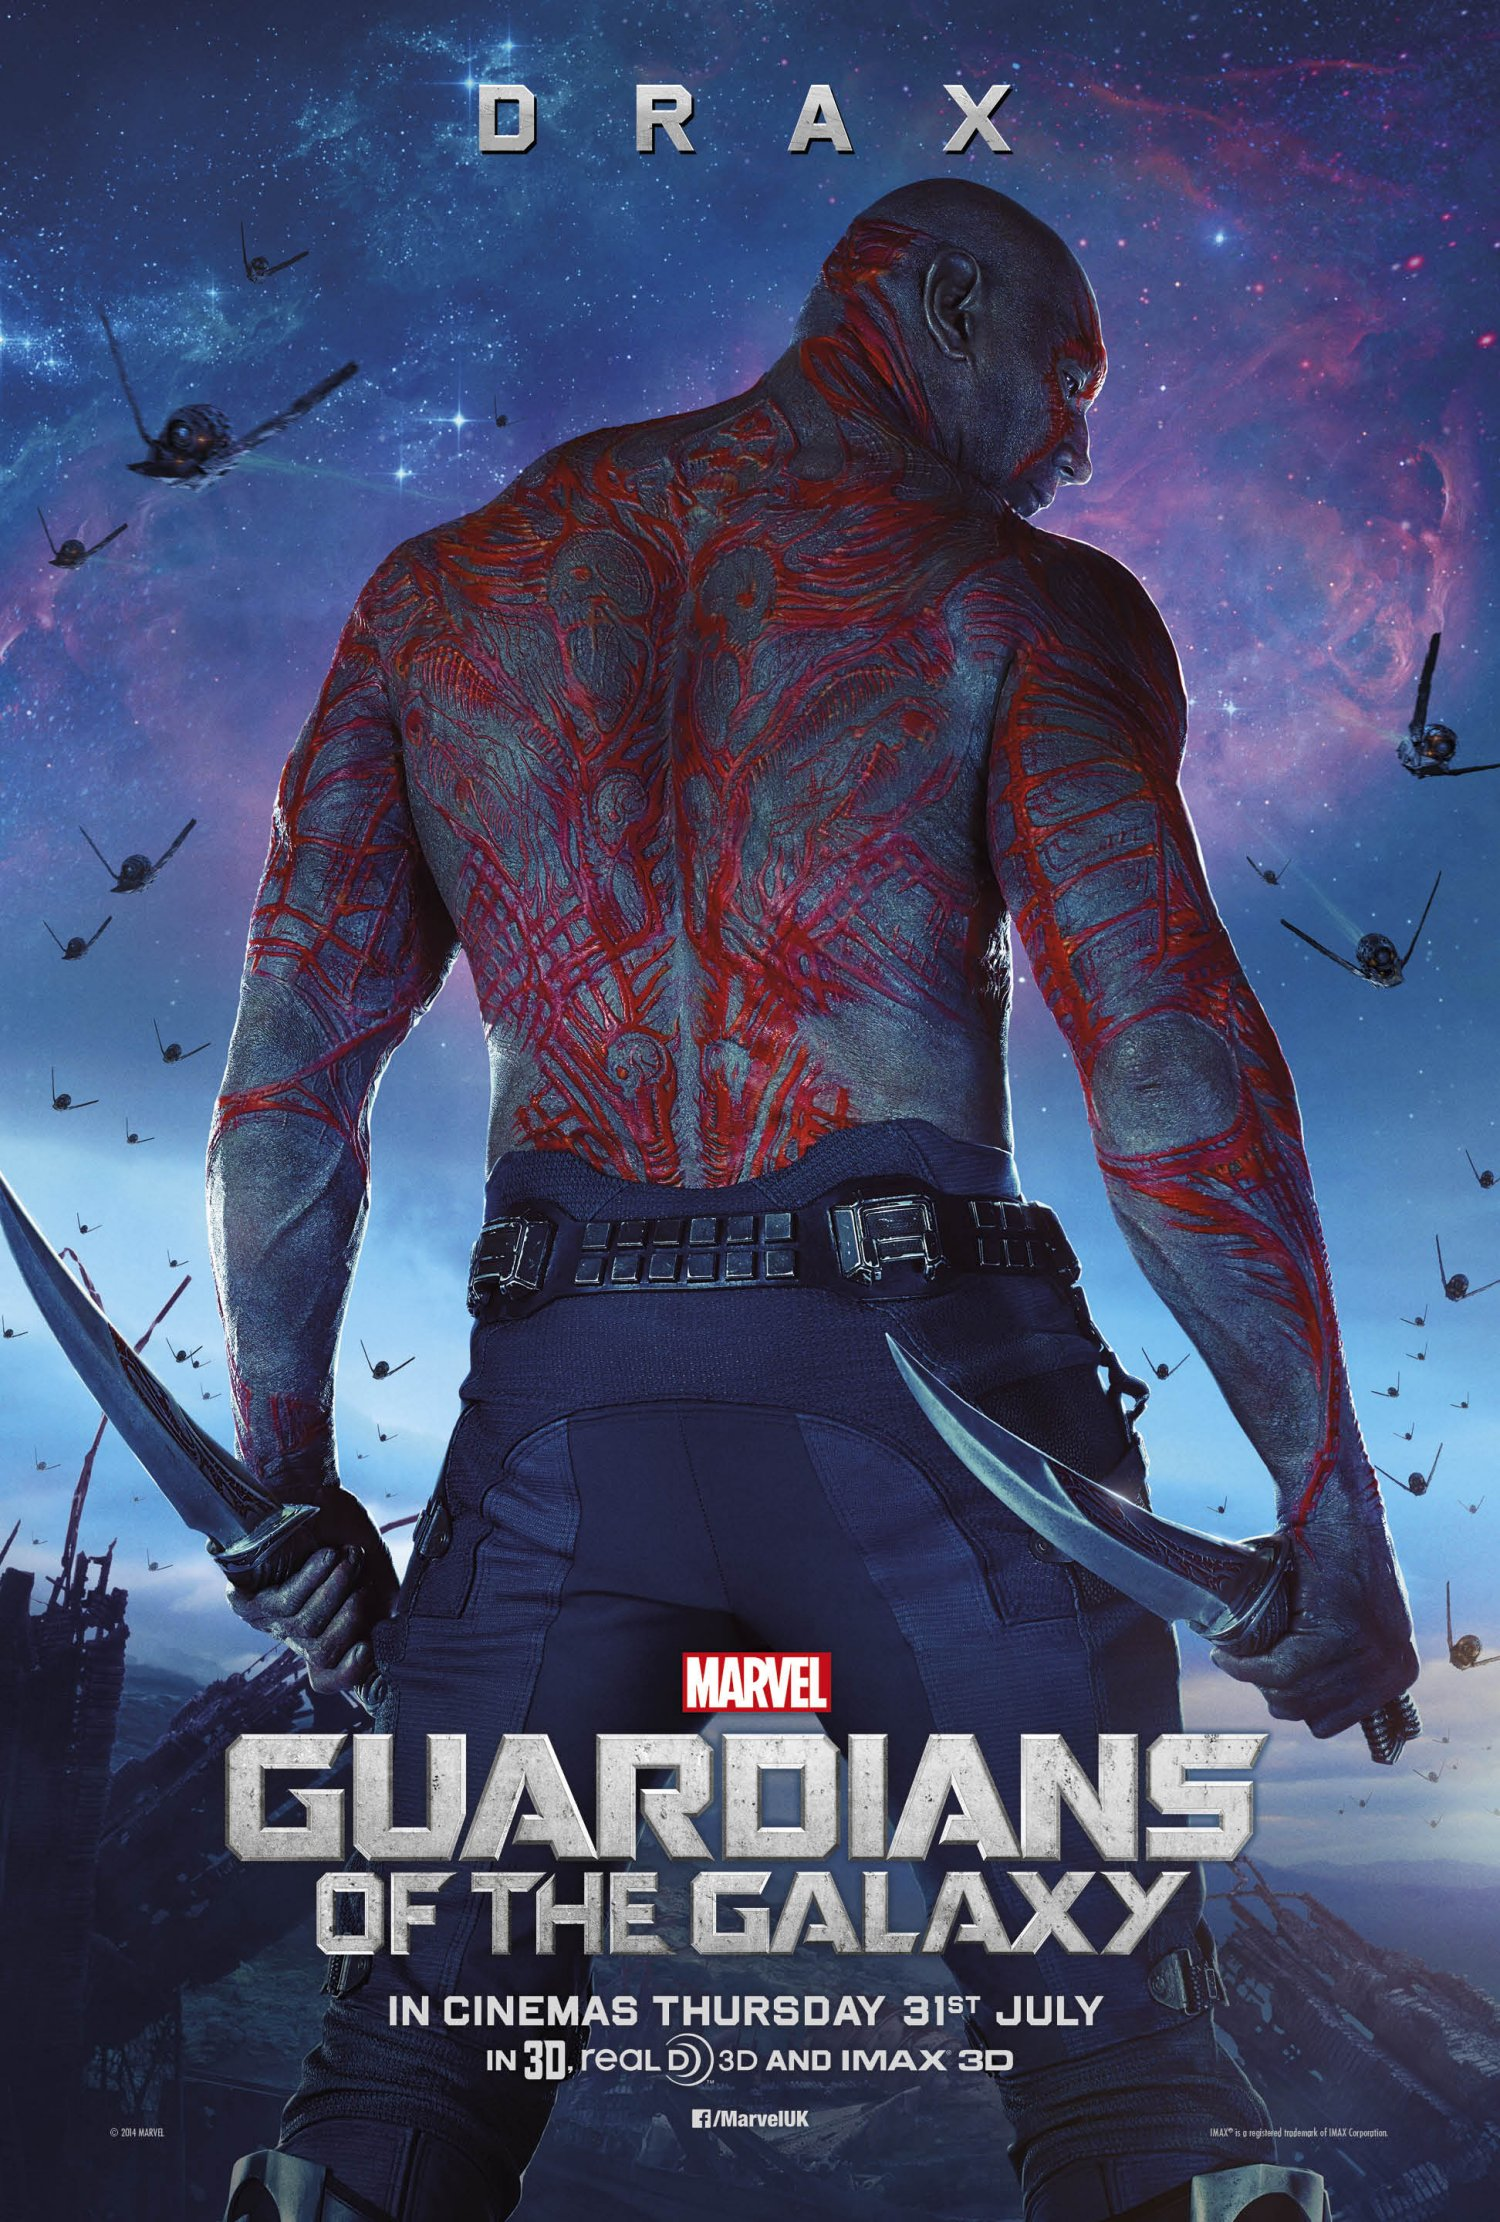 Guardians of the Galaxy – Drax poster